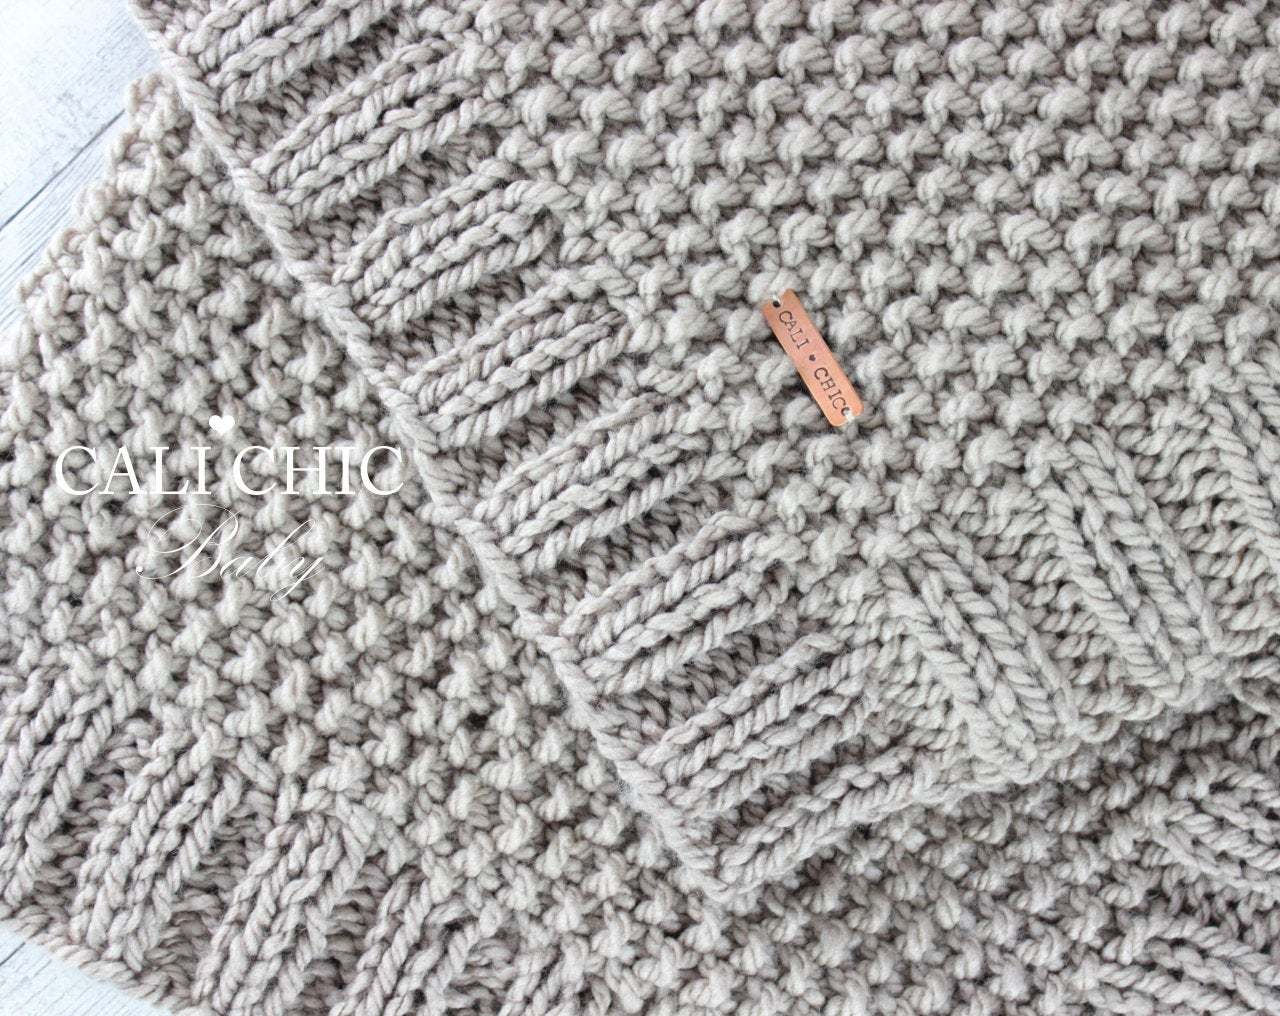 Knitting Pattern For Baby Blankets Knitting Blanket Pattern Knit Ba Blanket Pattern Manchester 132 Knitting Pattern Ba Blanket Diy Knit Ba Blanket Instant Download